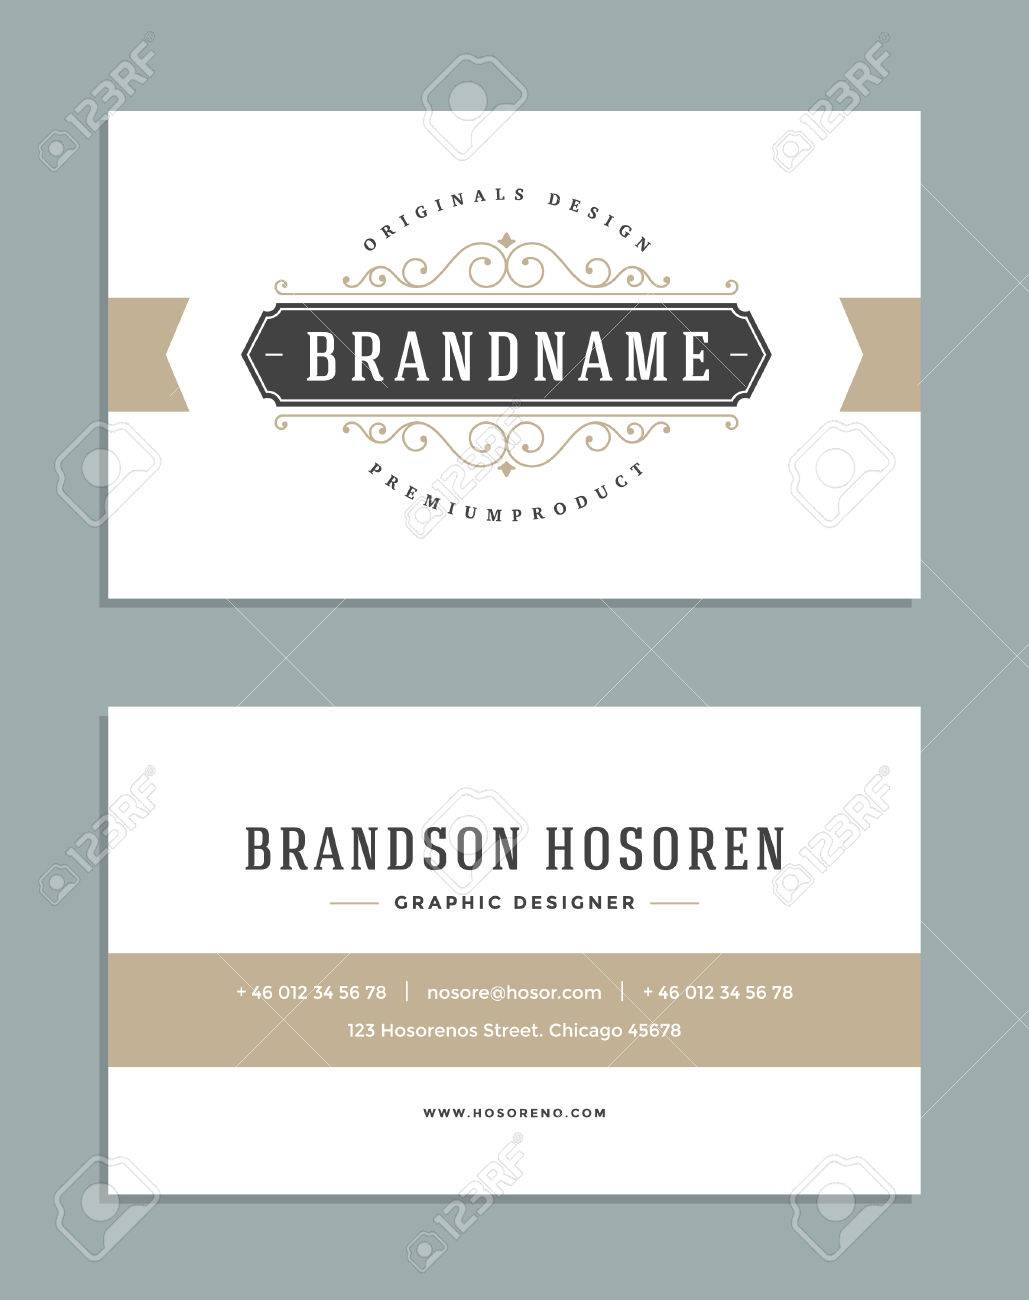 Vintage ornament business card vector template retro luxury vintage ornament business card vector template retro luxury logo royal design flourishes frame magicingreecefo Gallery